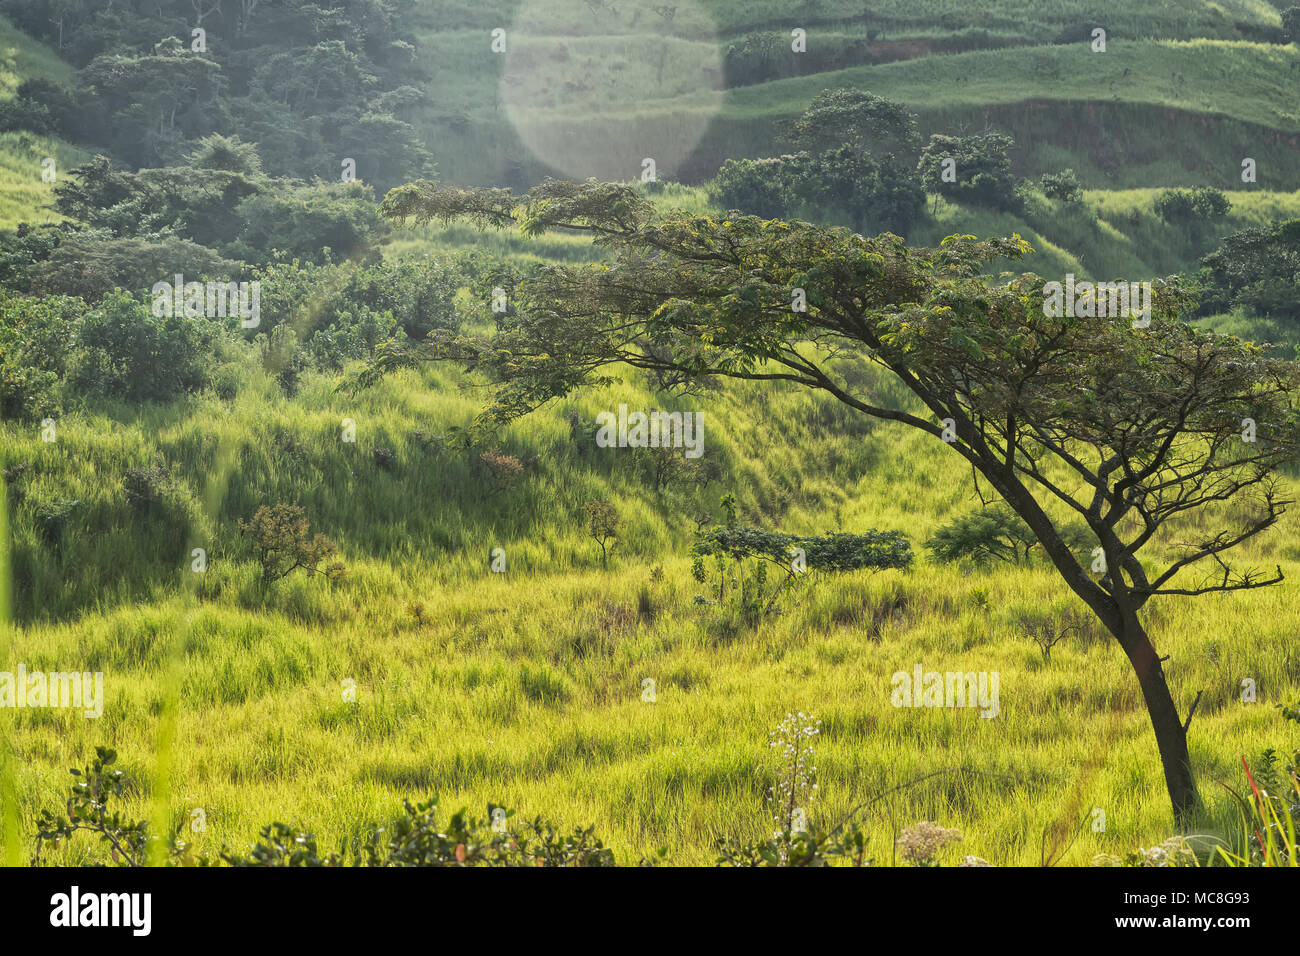 Tree inserted in green valley. - Stock Image